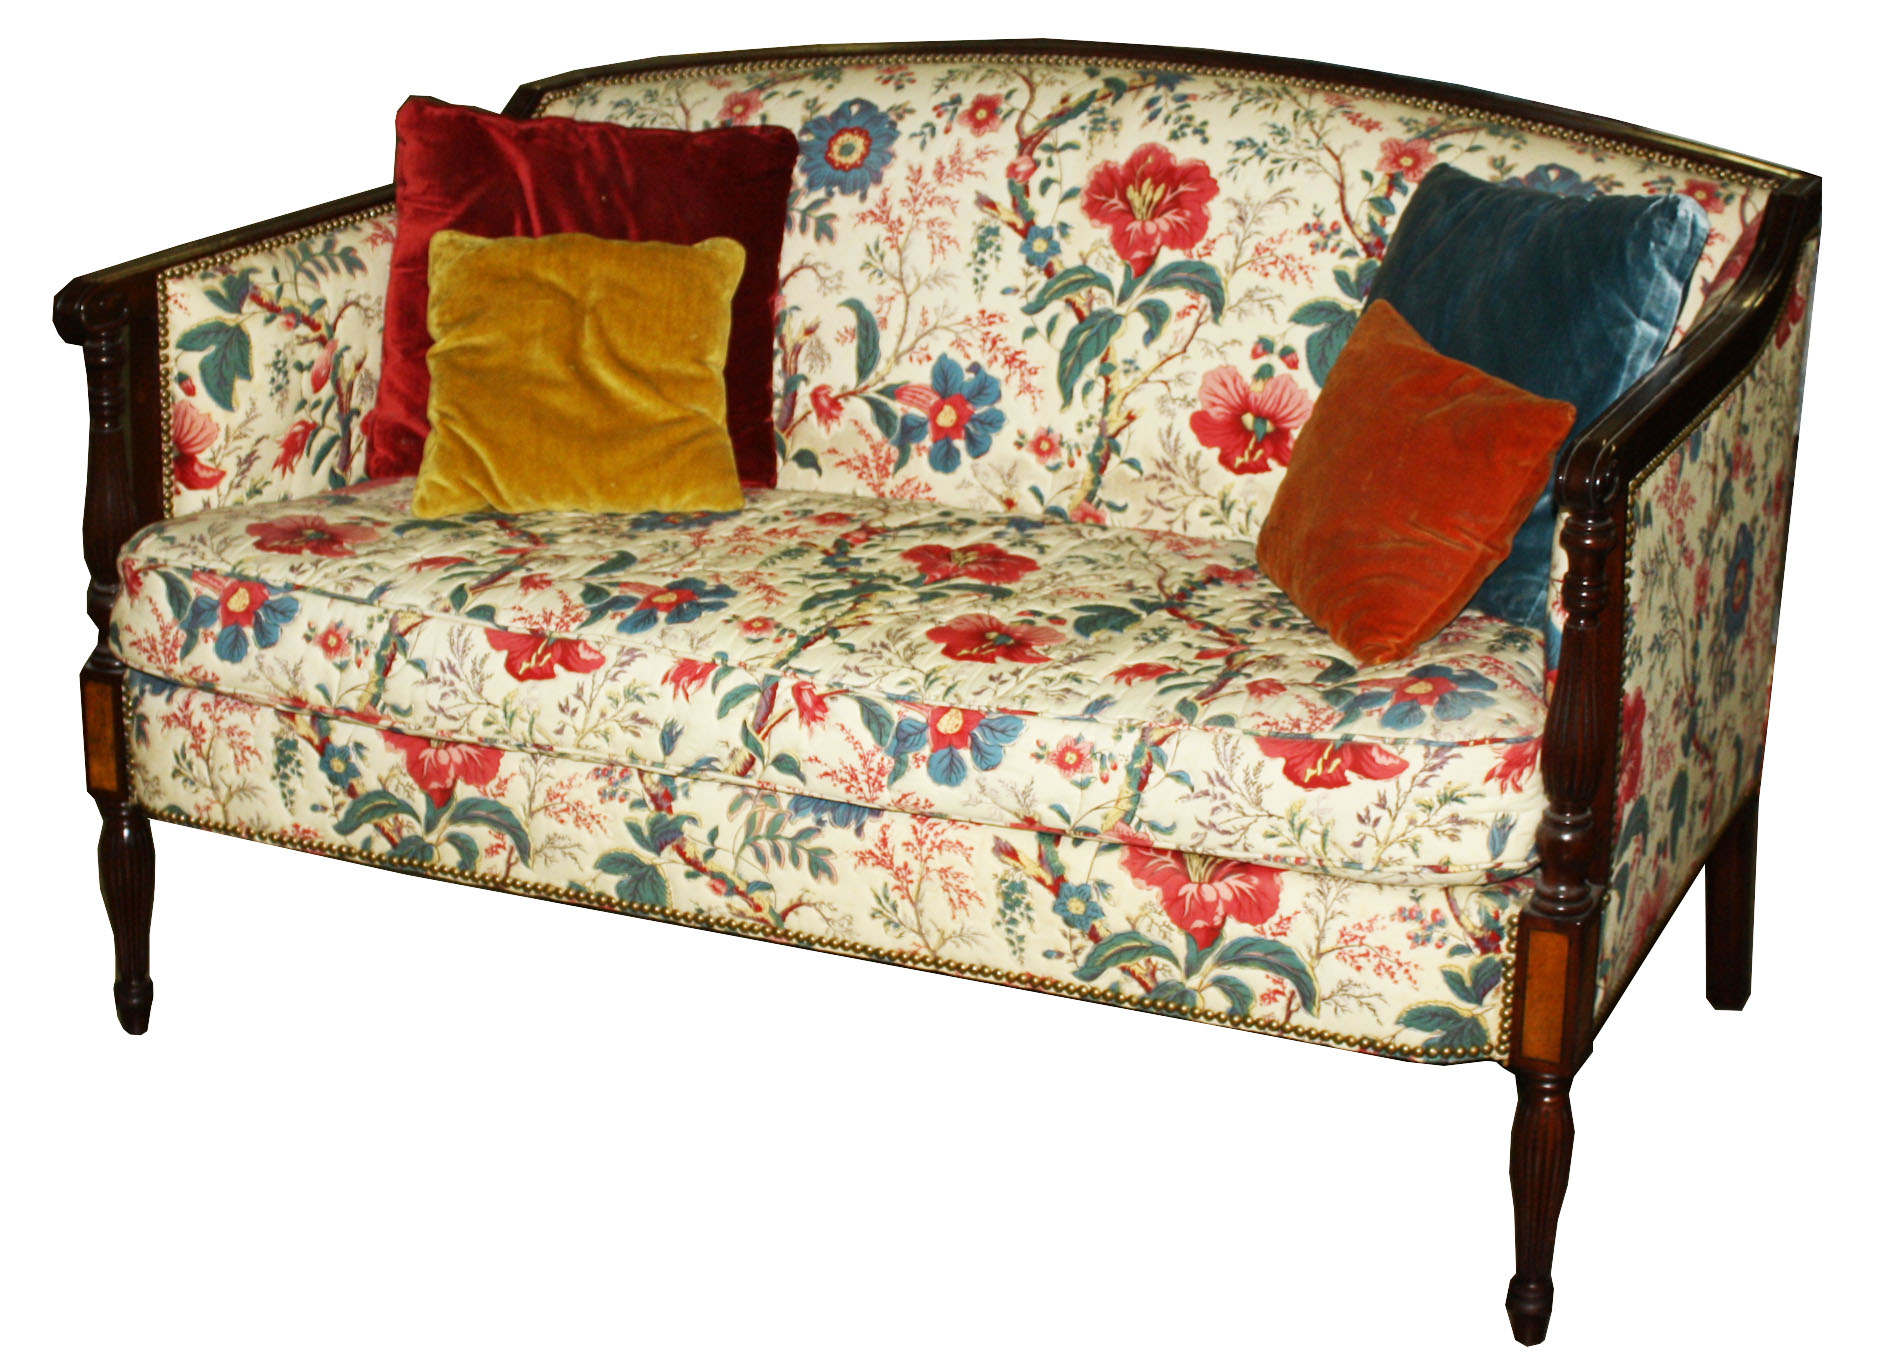 Superior Paine Furniture Co. Sheraton Settee In Chintz Upholstery.JPG